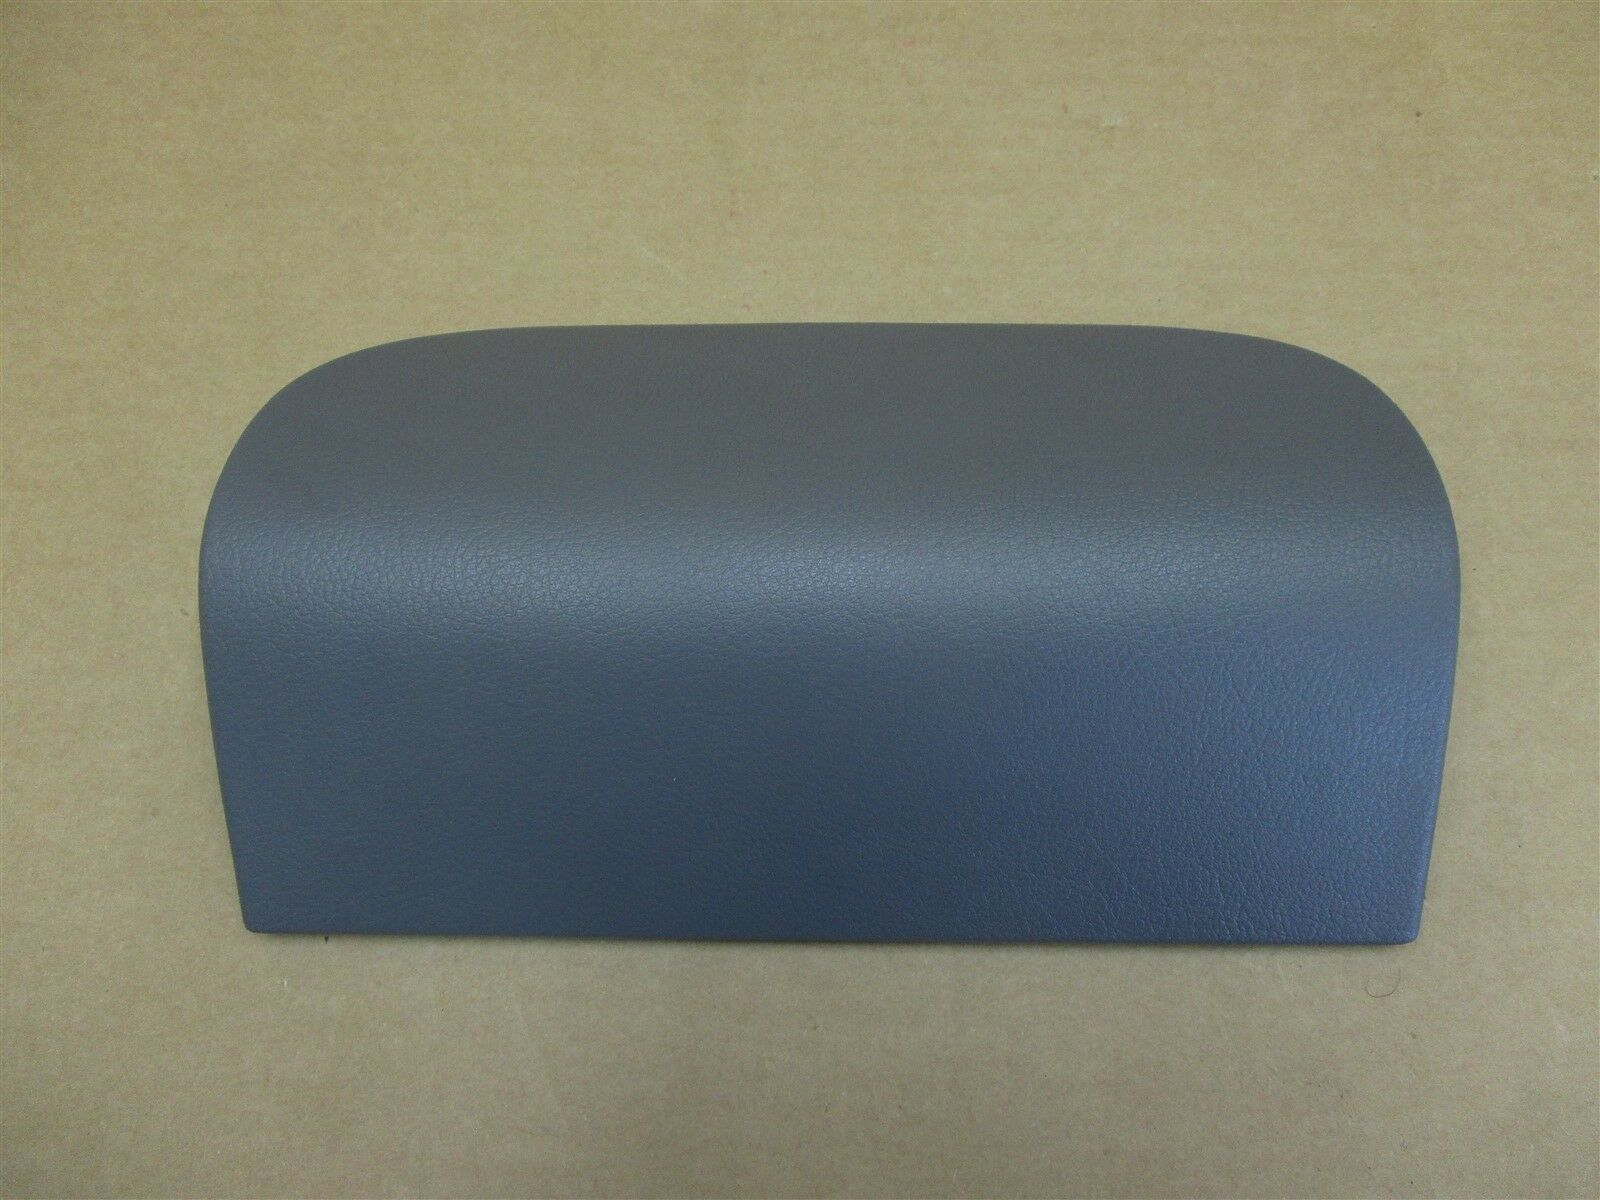 03 Boxster RWD Porsche 986 R PASSENGER DASH TRIM COVER 99680317304 RIGHT 30,506